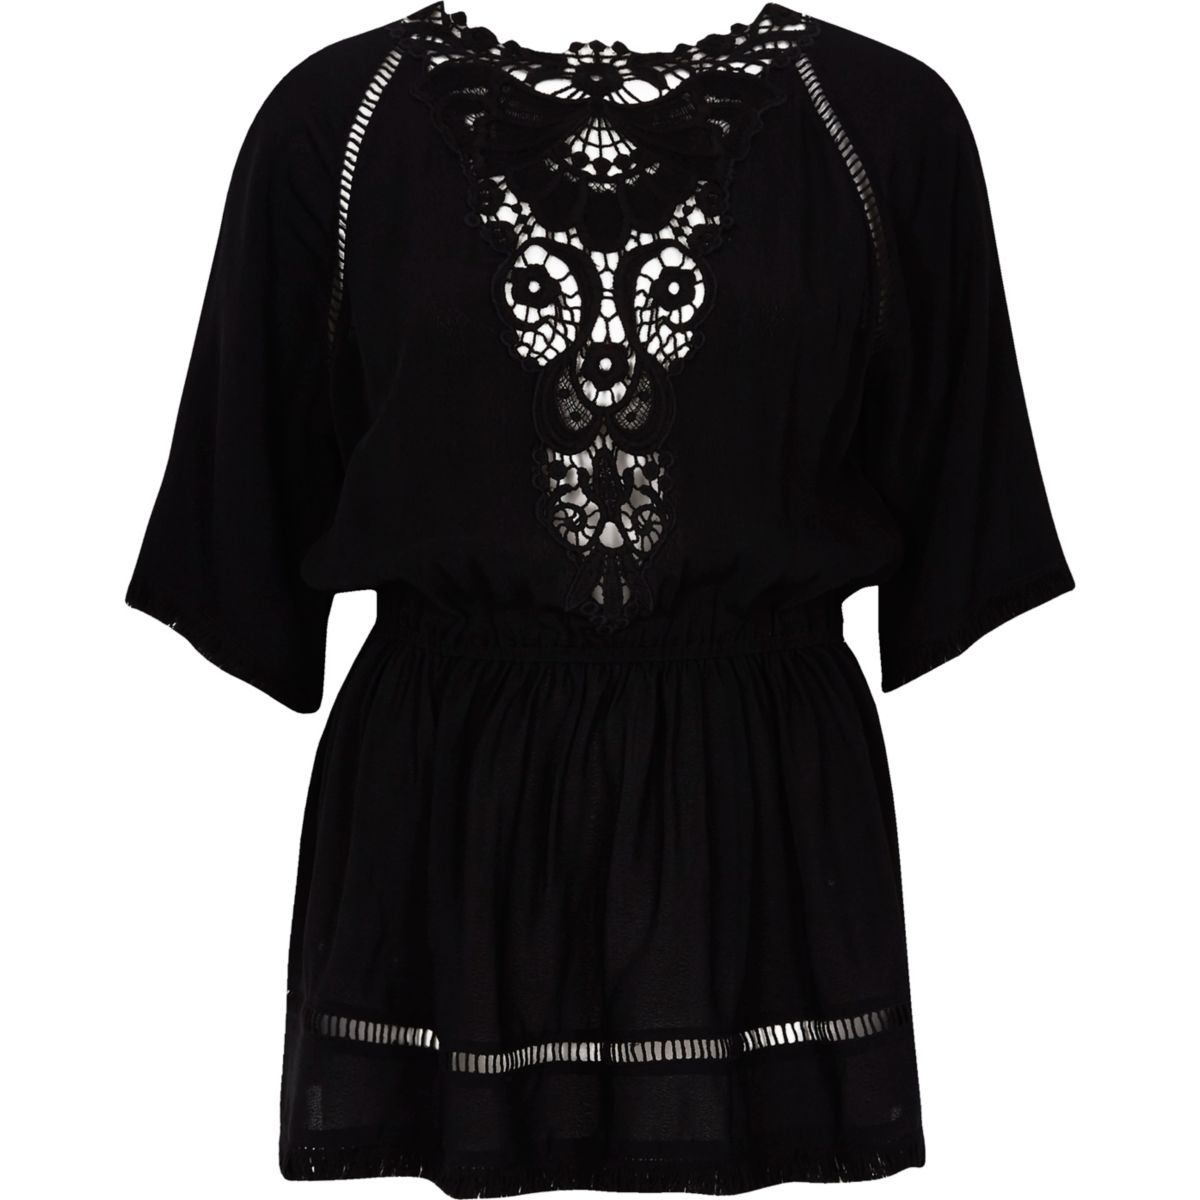 Black short sleeve embroidered top